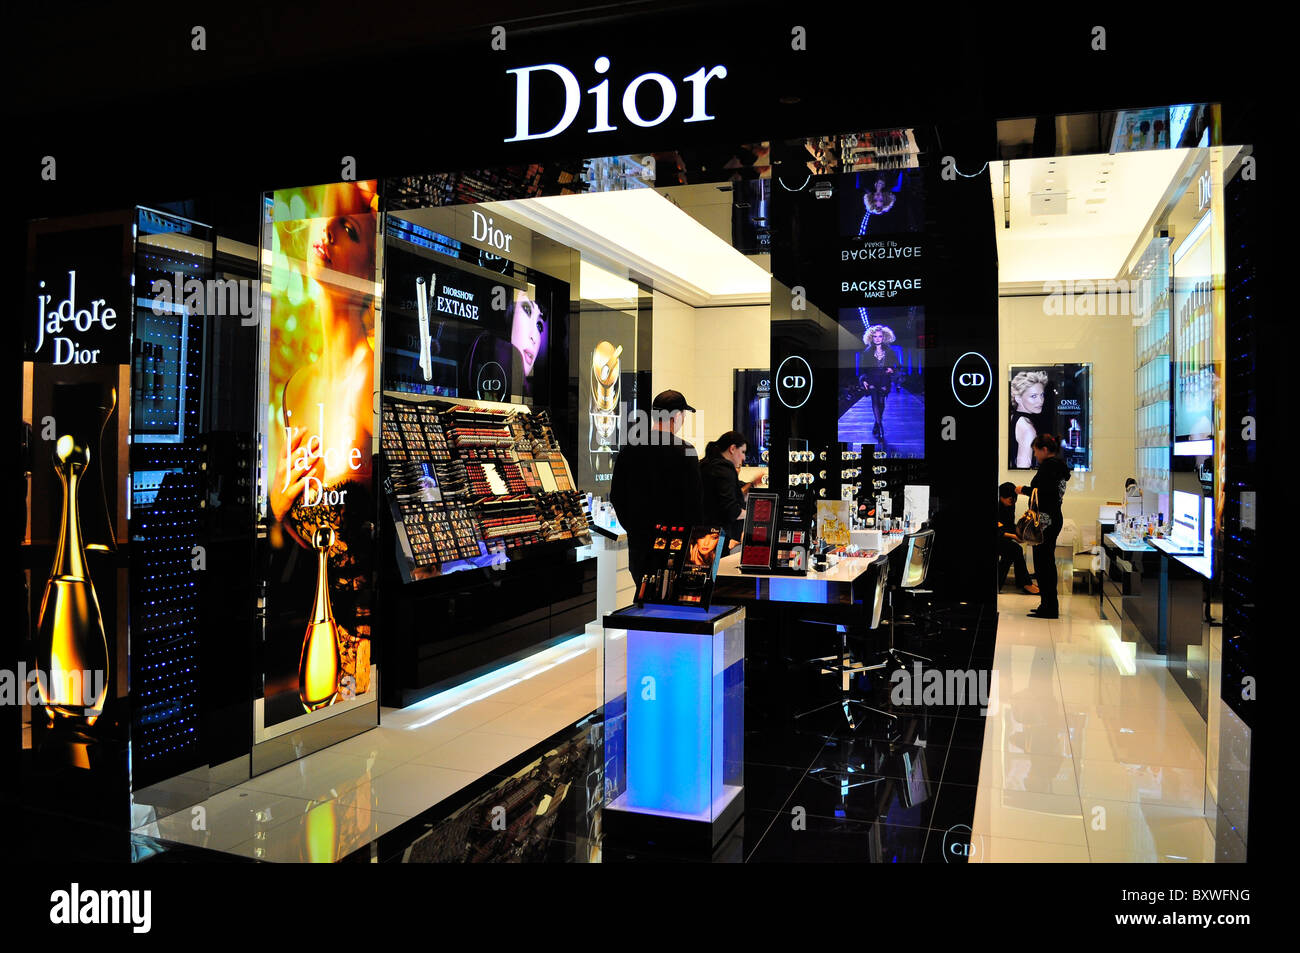 Top 10 Jewelry Brands In Malaysia Top 10 Jewelry Brands